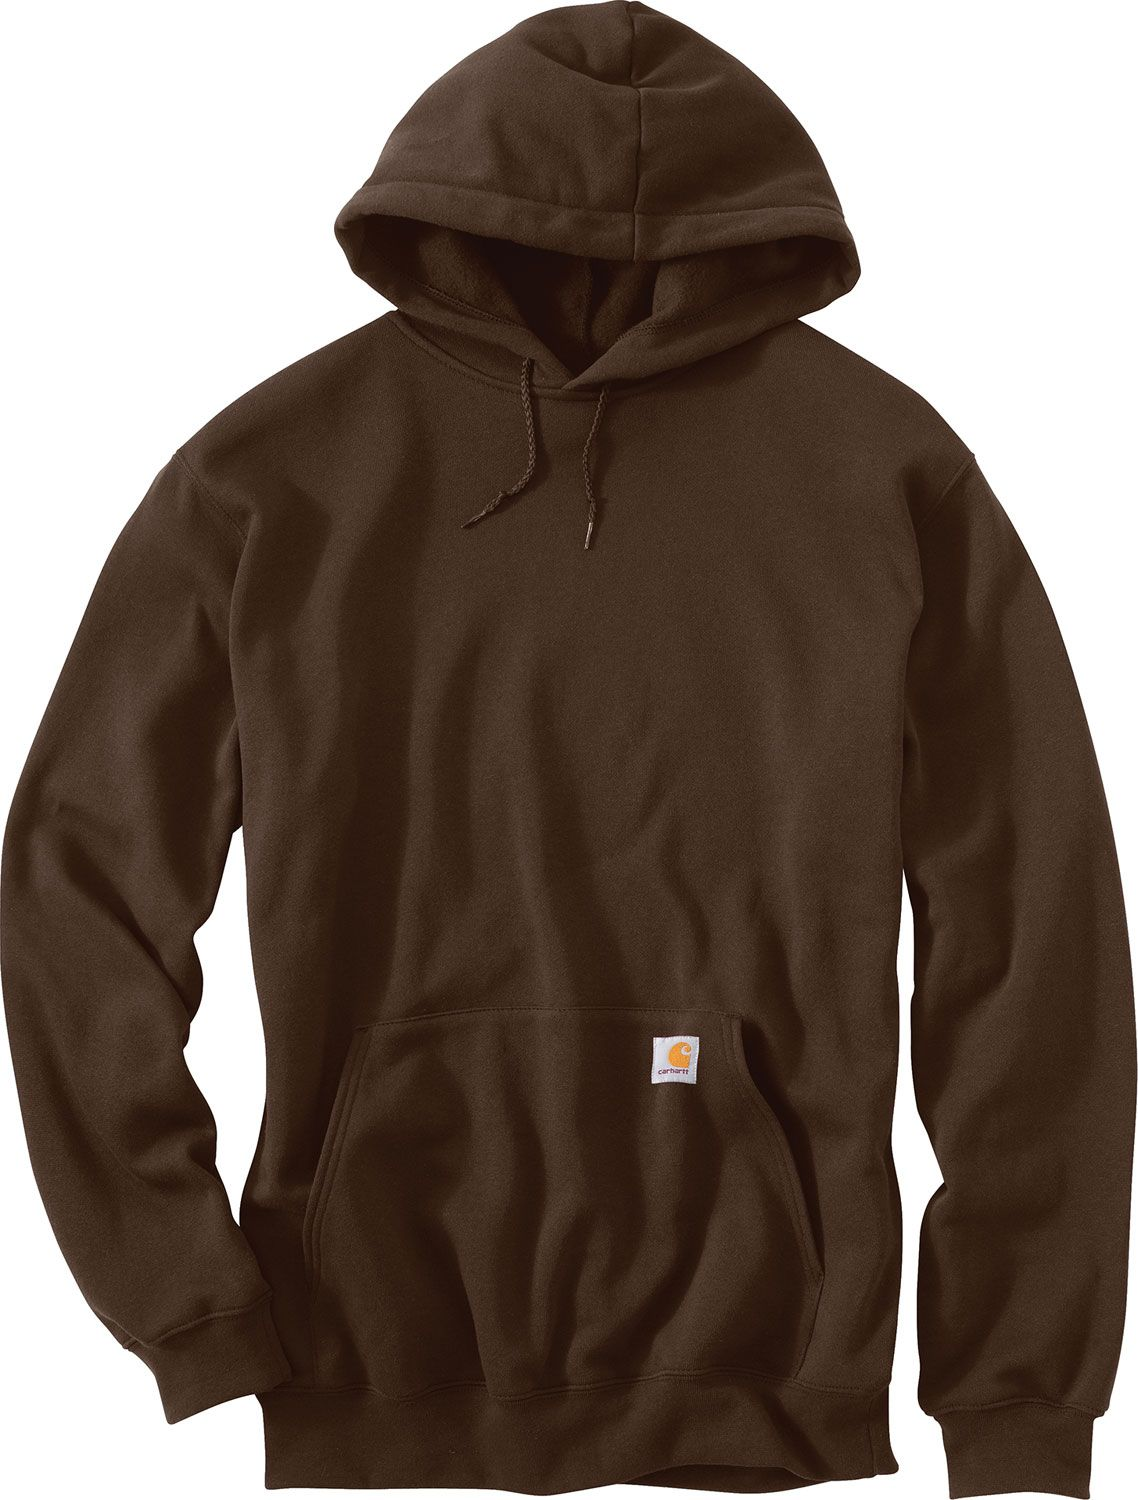 Carhartt Men's Midweight Hooded Sweatshirt | DICK'S Sporting Goods